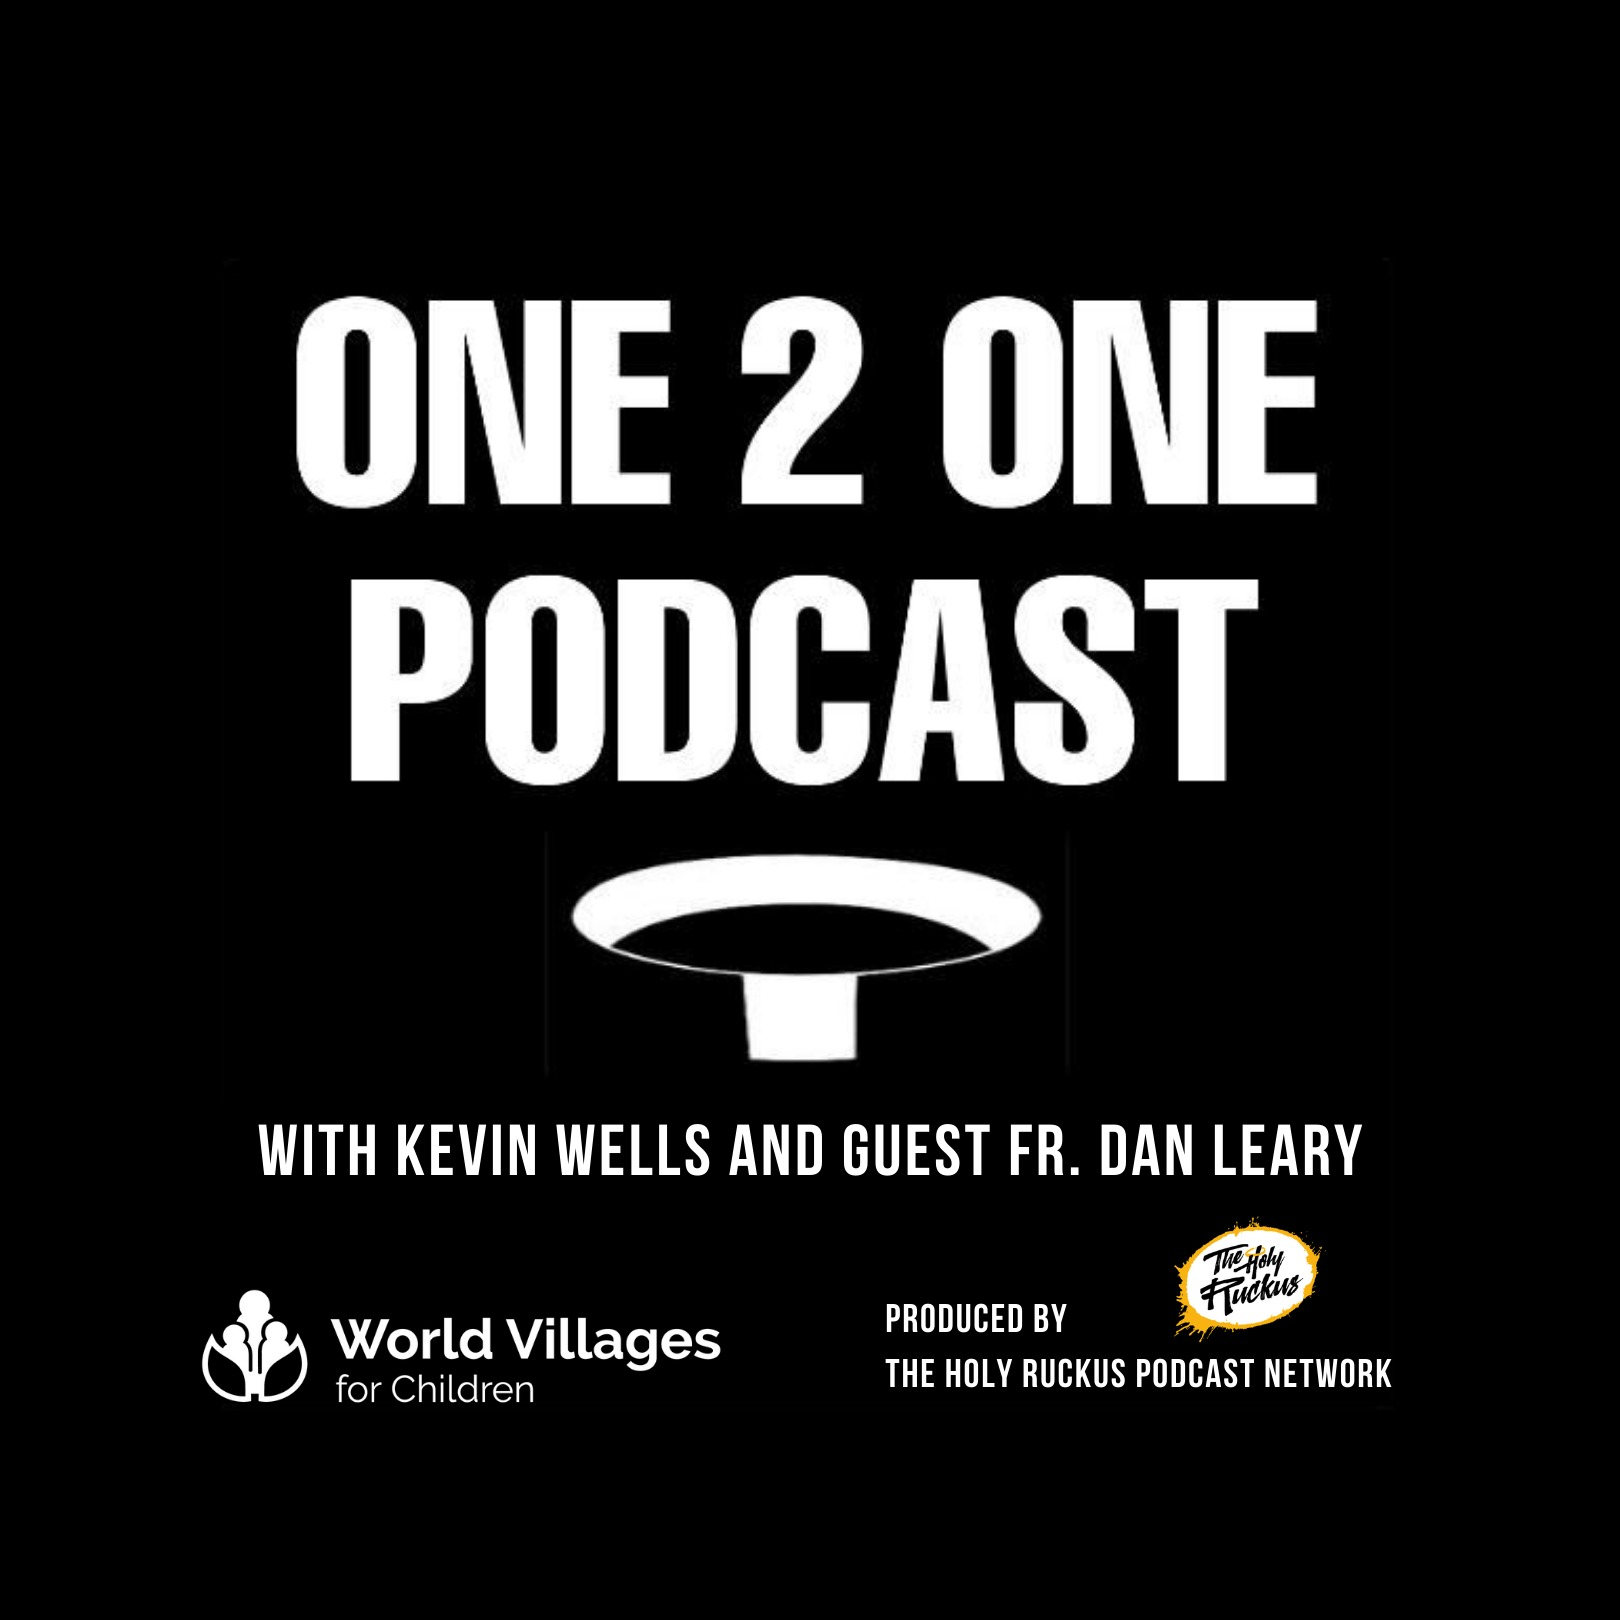 One 2 One Podcast